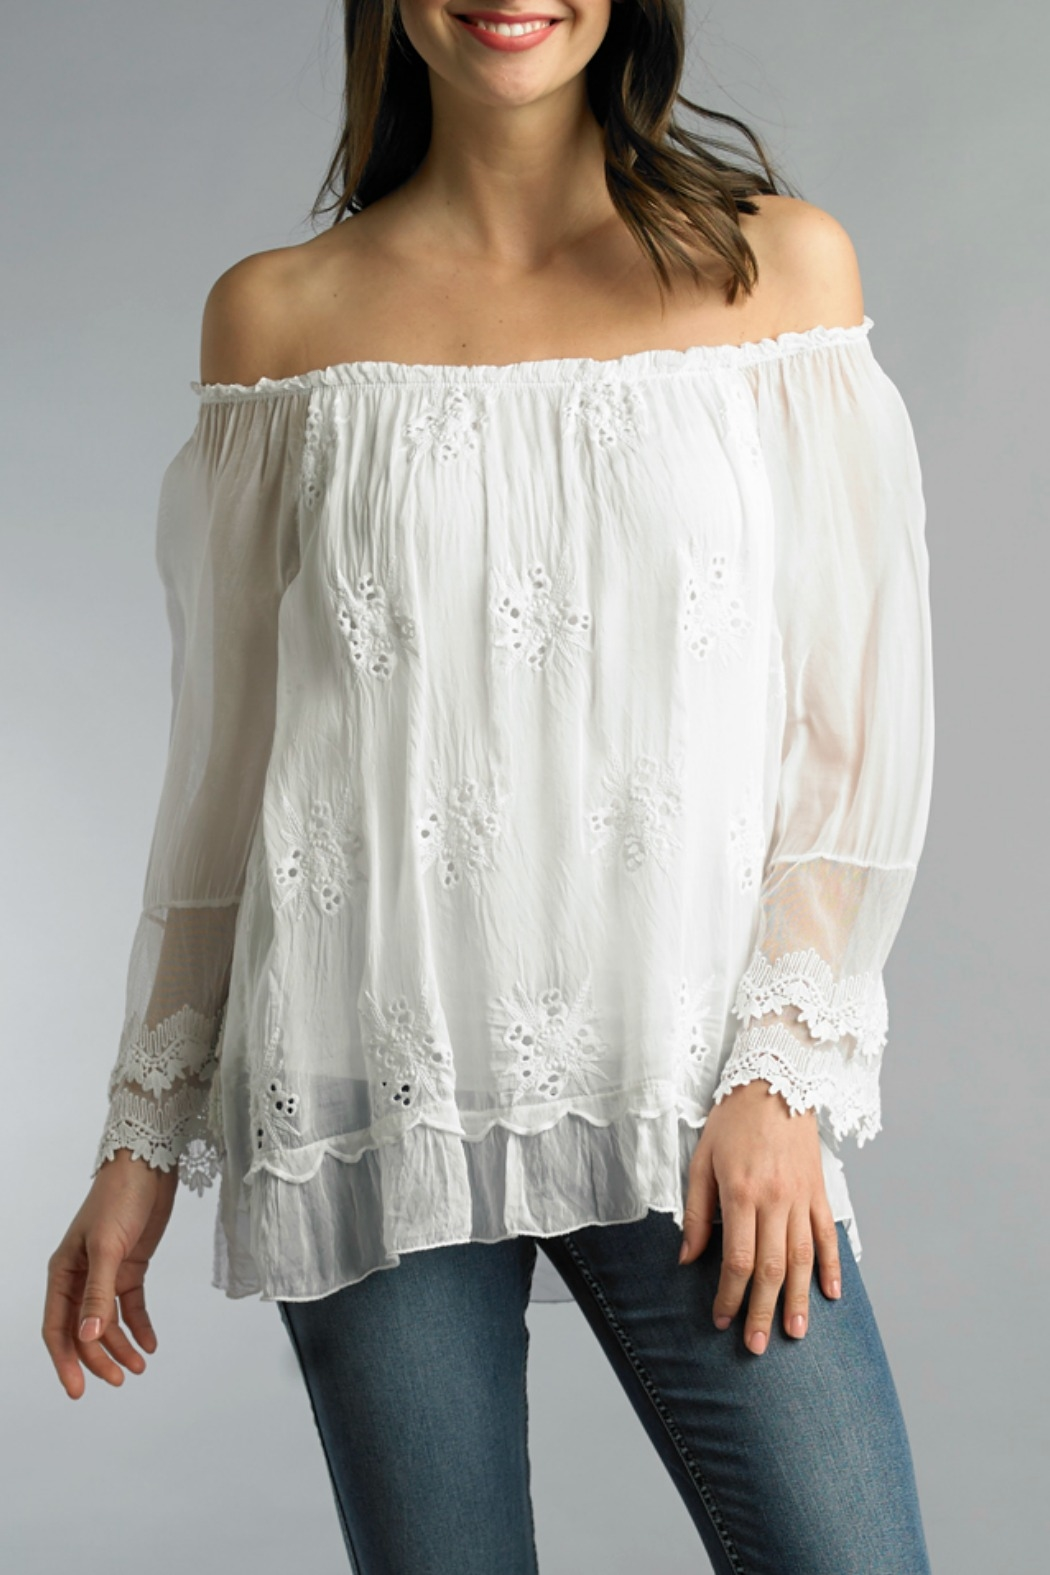 Tempo Paris Embroidered Top - Main Image